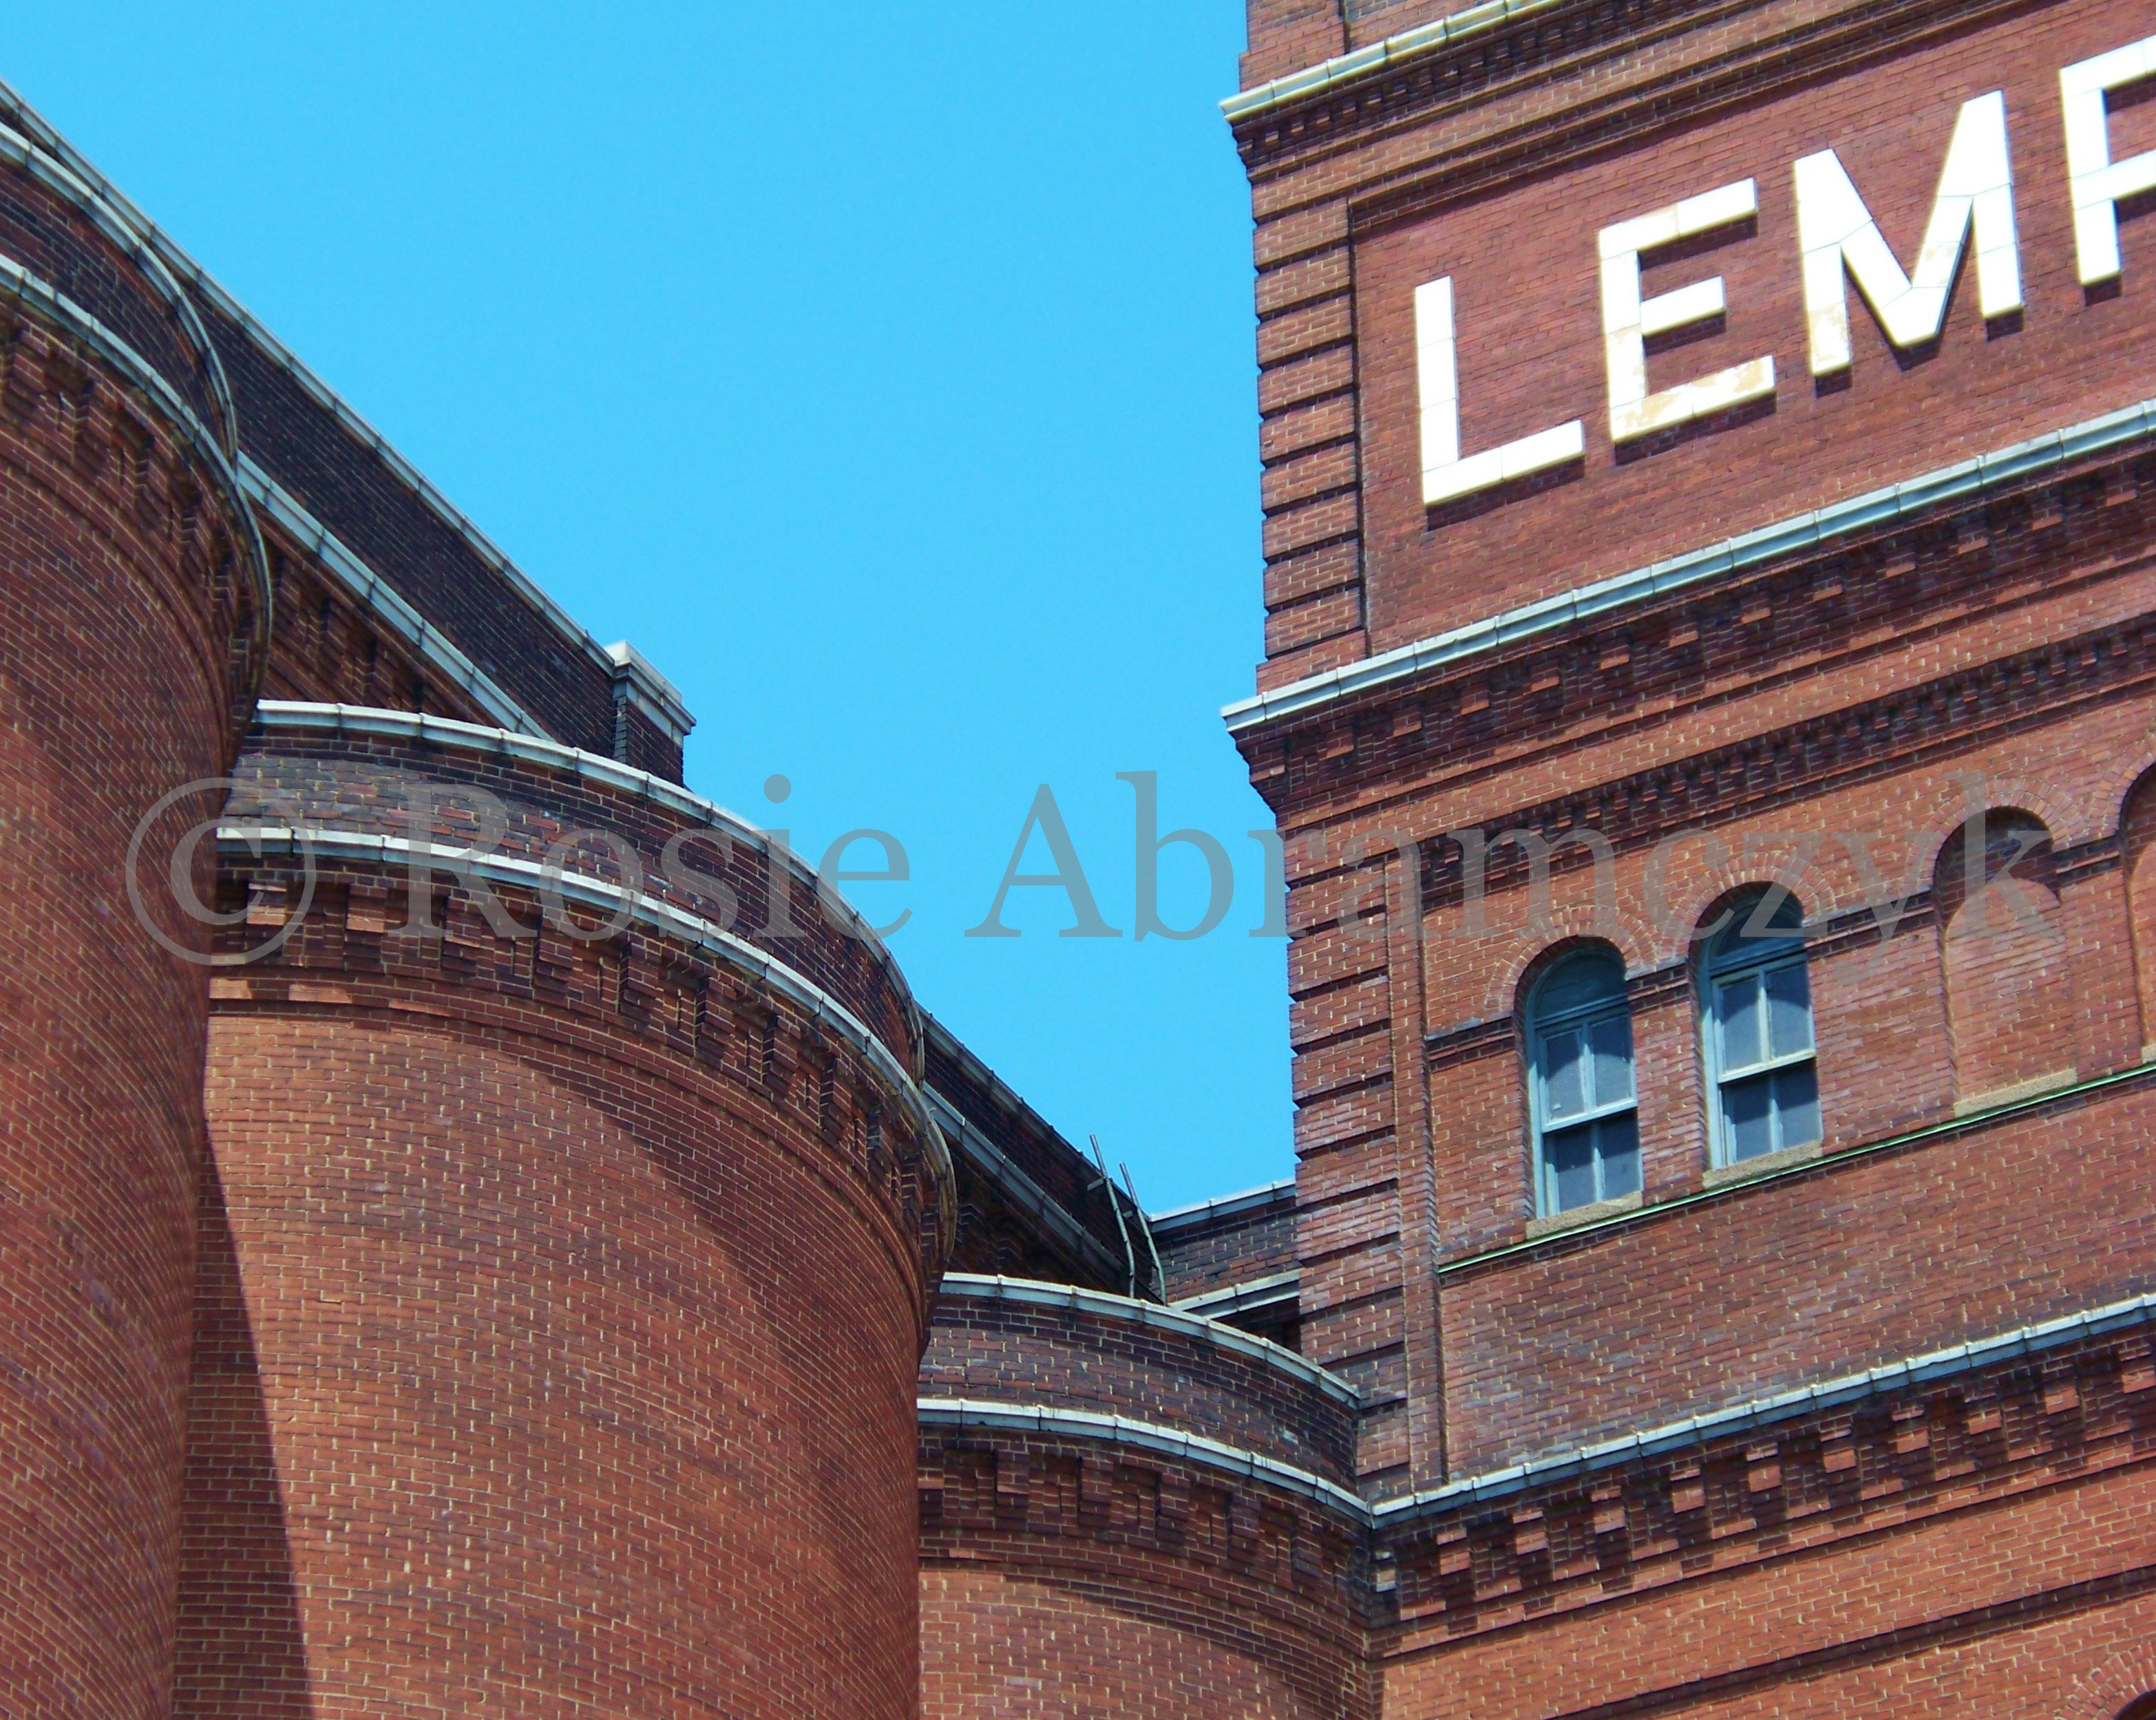 Lemp Brewery, St. Louis, MO, by Rosie Abramczyk, Photo, 2009